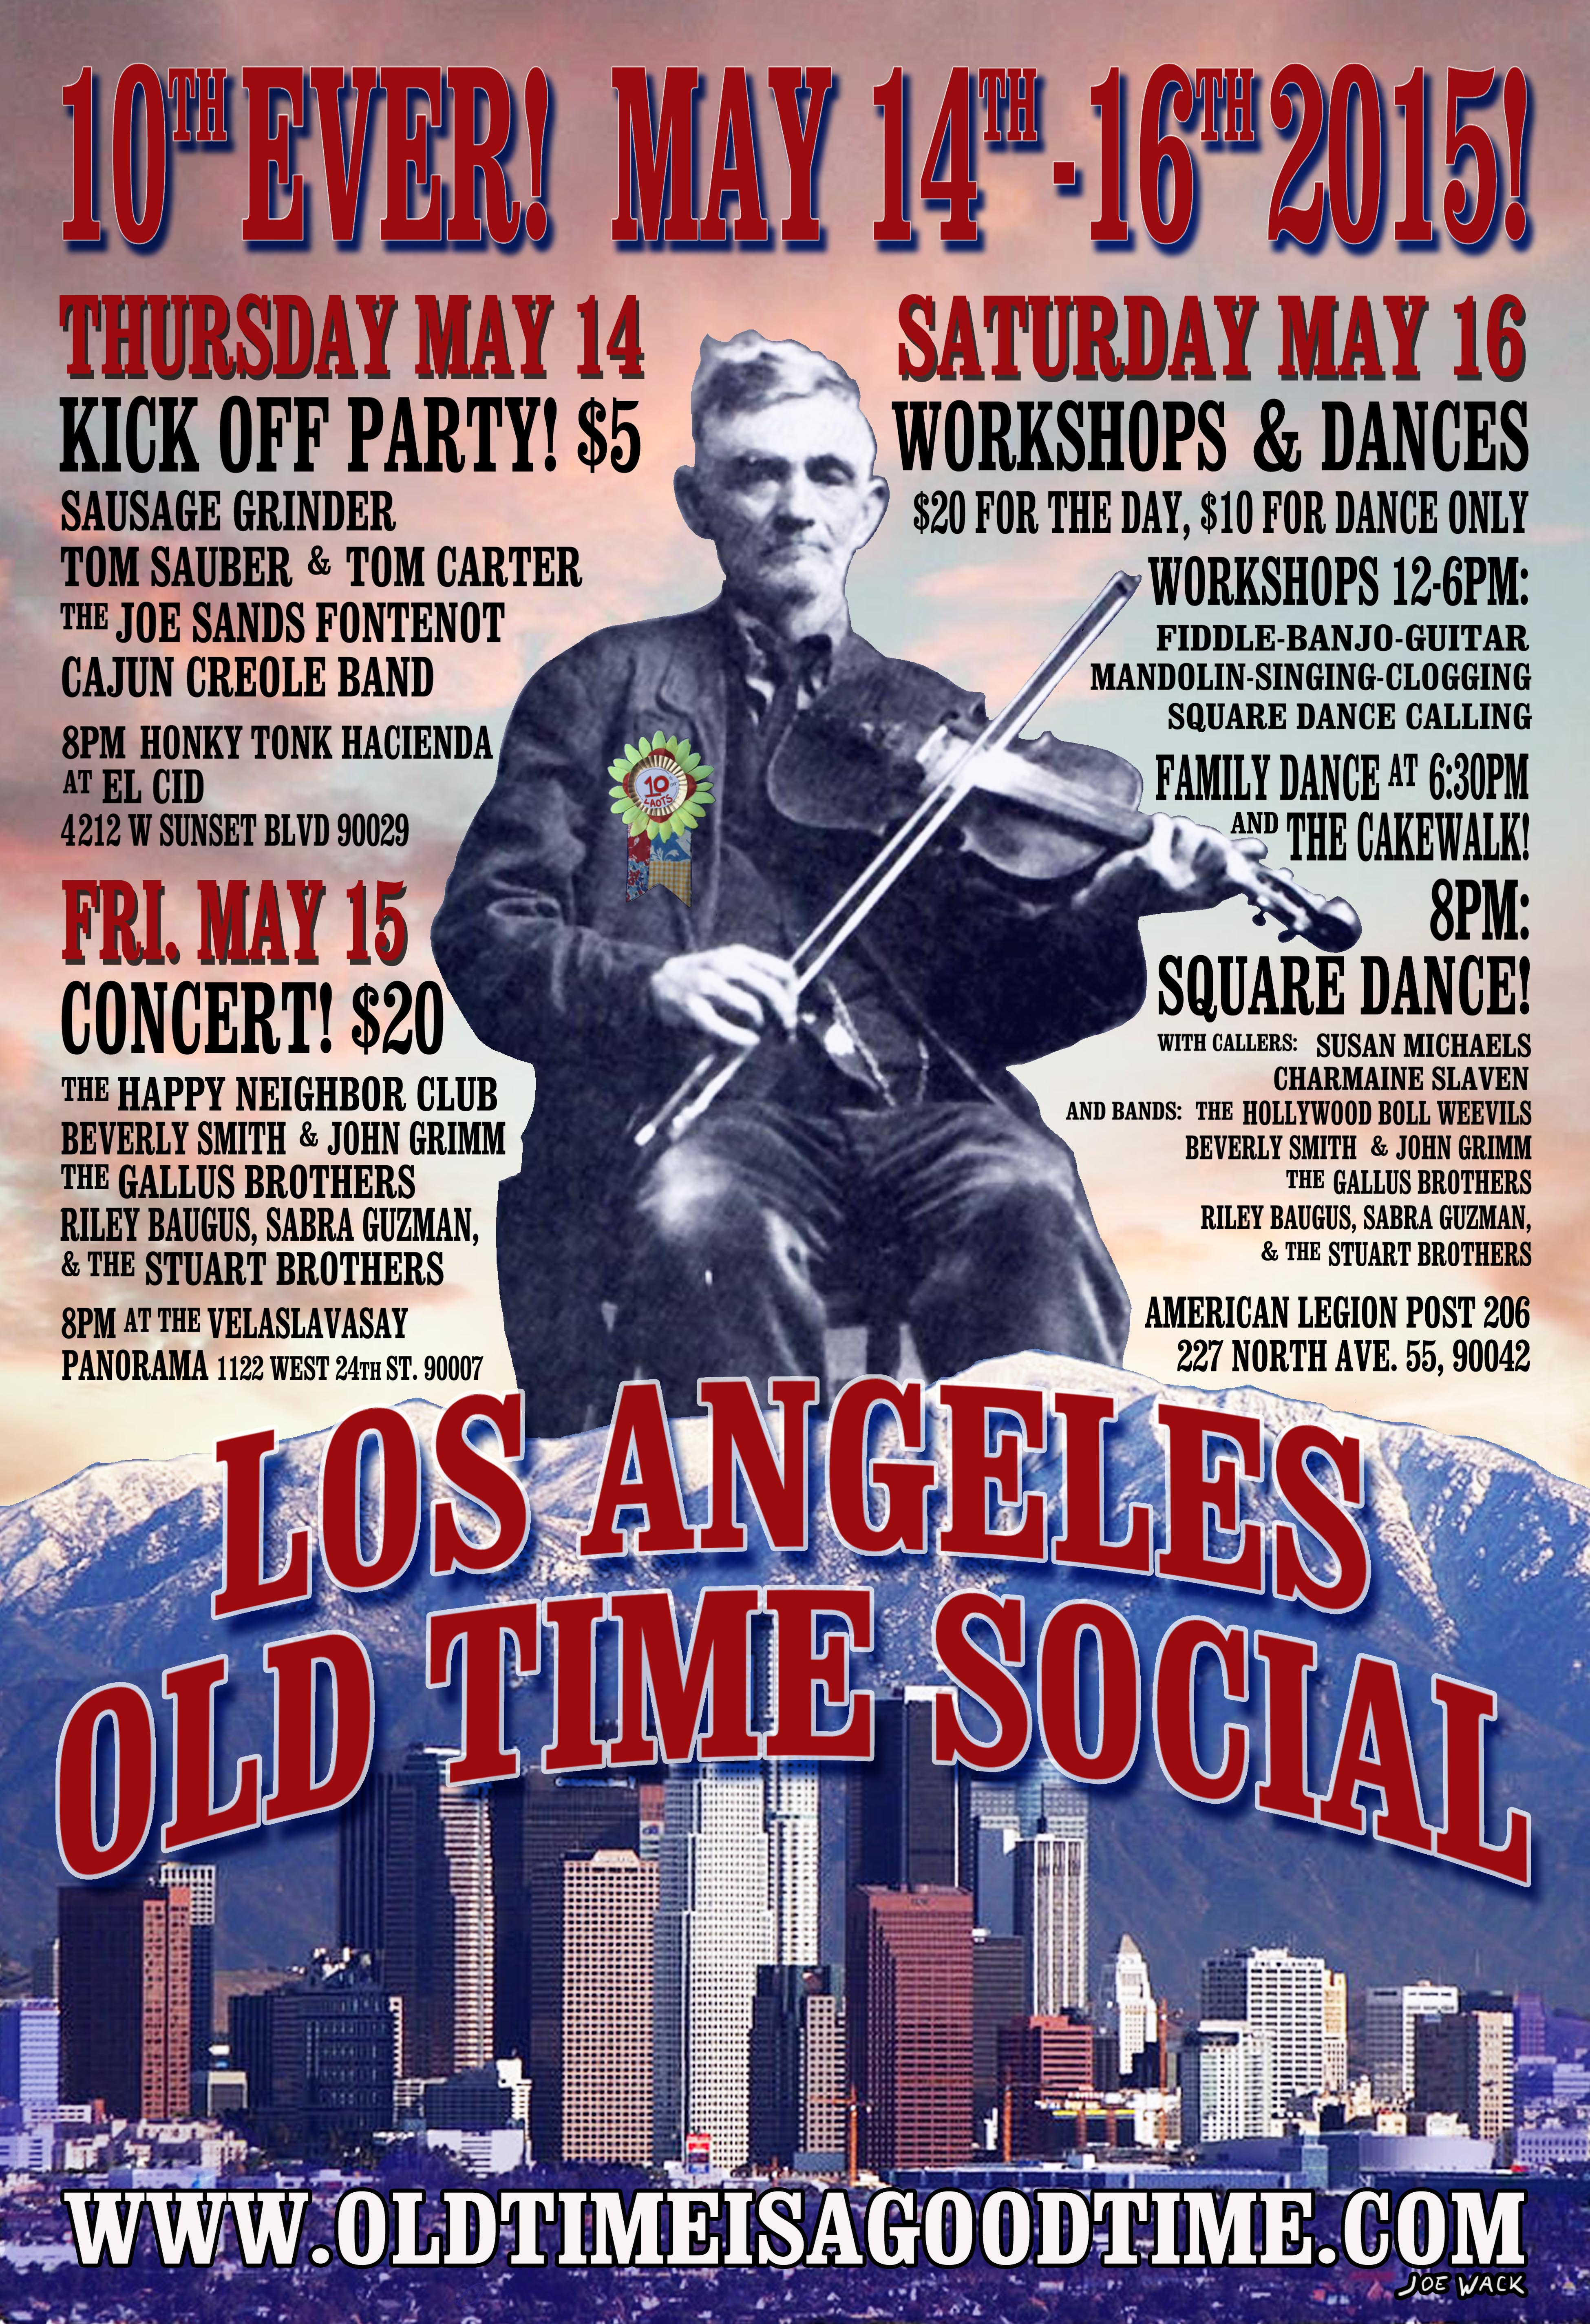 10th Ever Los Angeles Old Time Social!